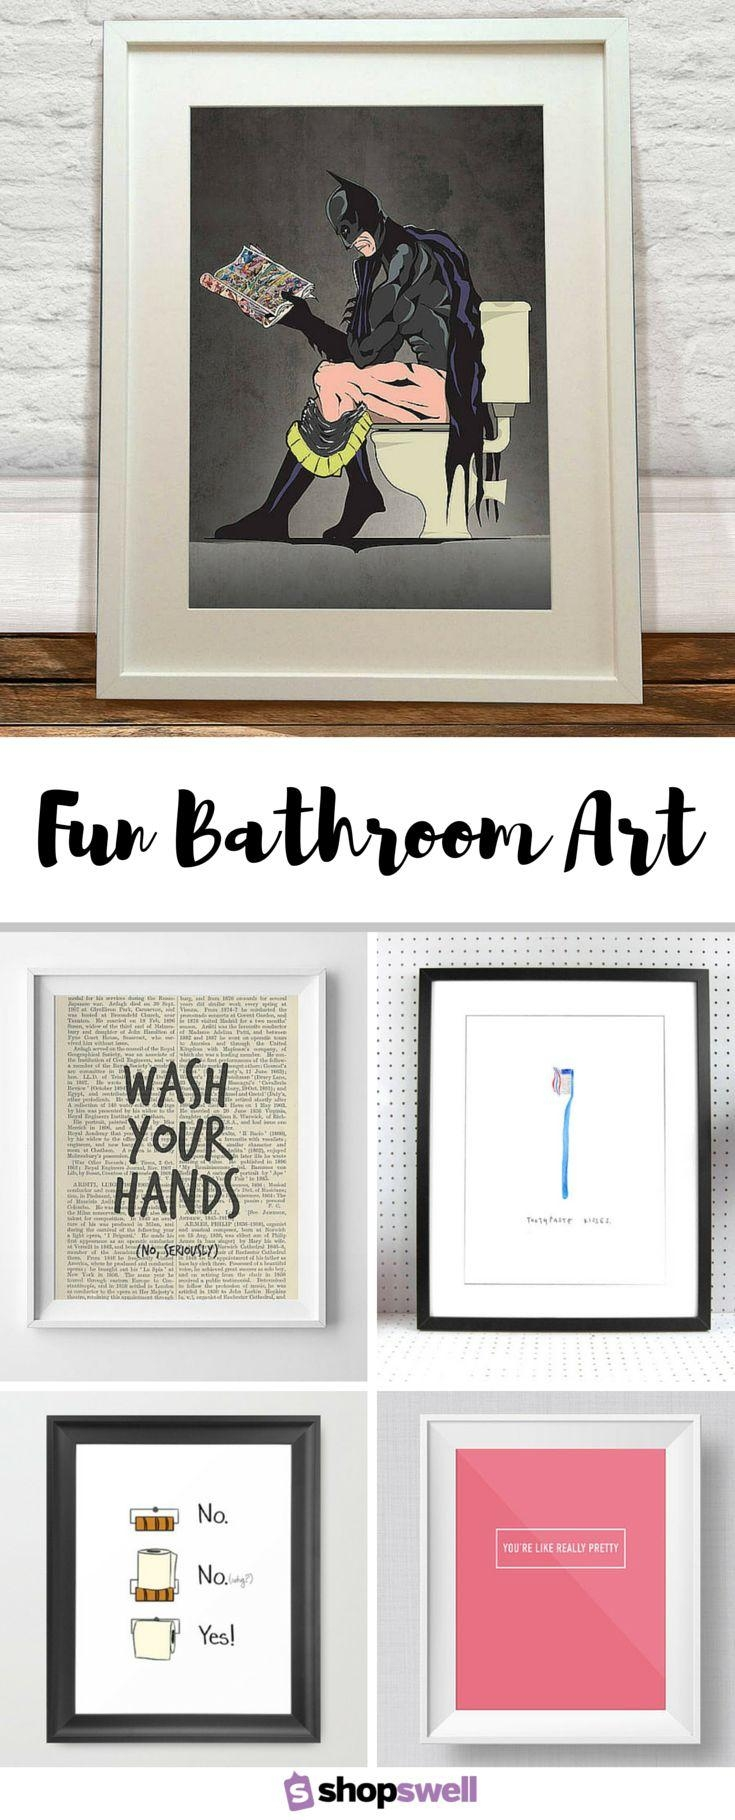 Best 25+ Bathroom Wall Art Ideas On Pinterest | Wall Decor For With Regard To Bathroom Wall Hangings (View 5 of 20)